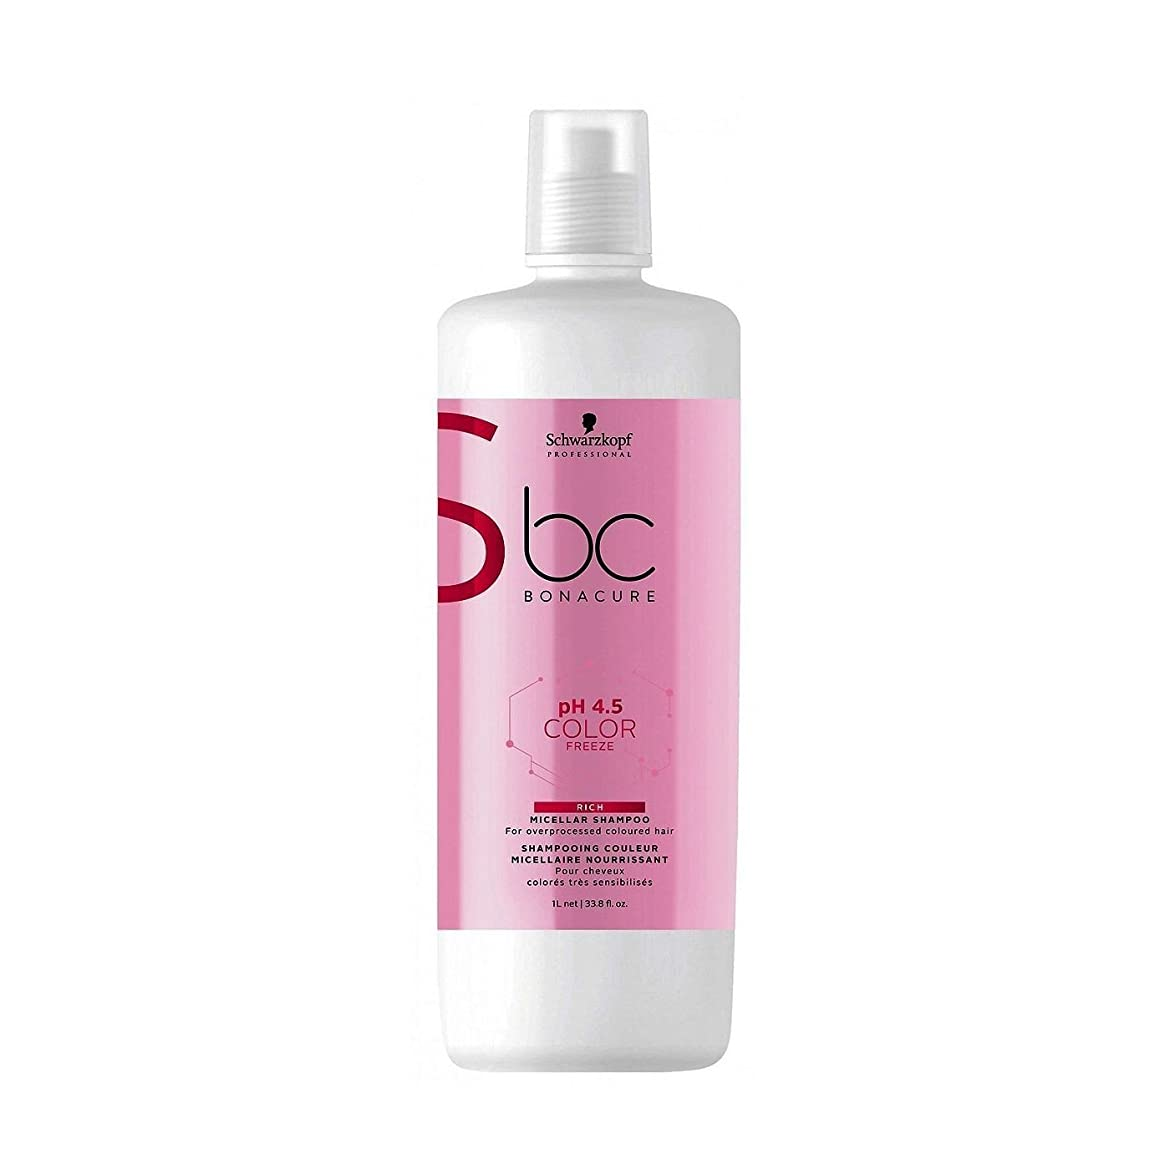 全能バンクウナギシュワルツコフ BC Bonacure pH 4.5 Color Freeze Rich Micellar Shampoo (For Overprocessed Coloured Hair) 1000ml/33.8oz並行輸入品